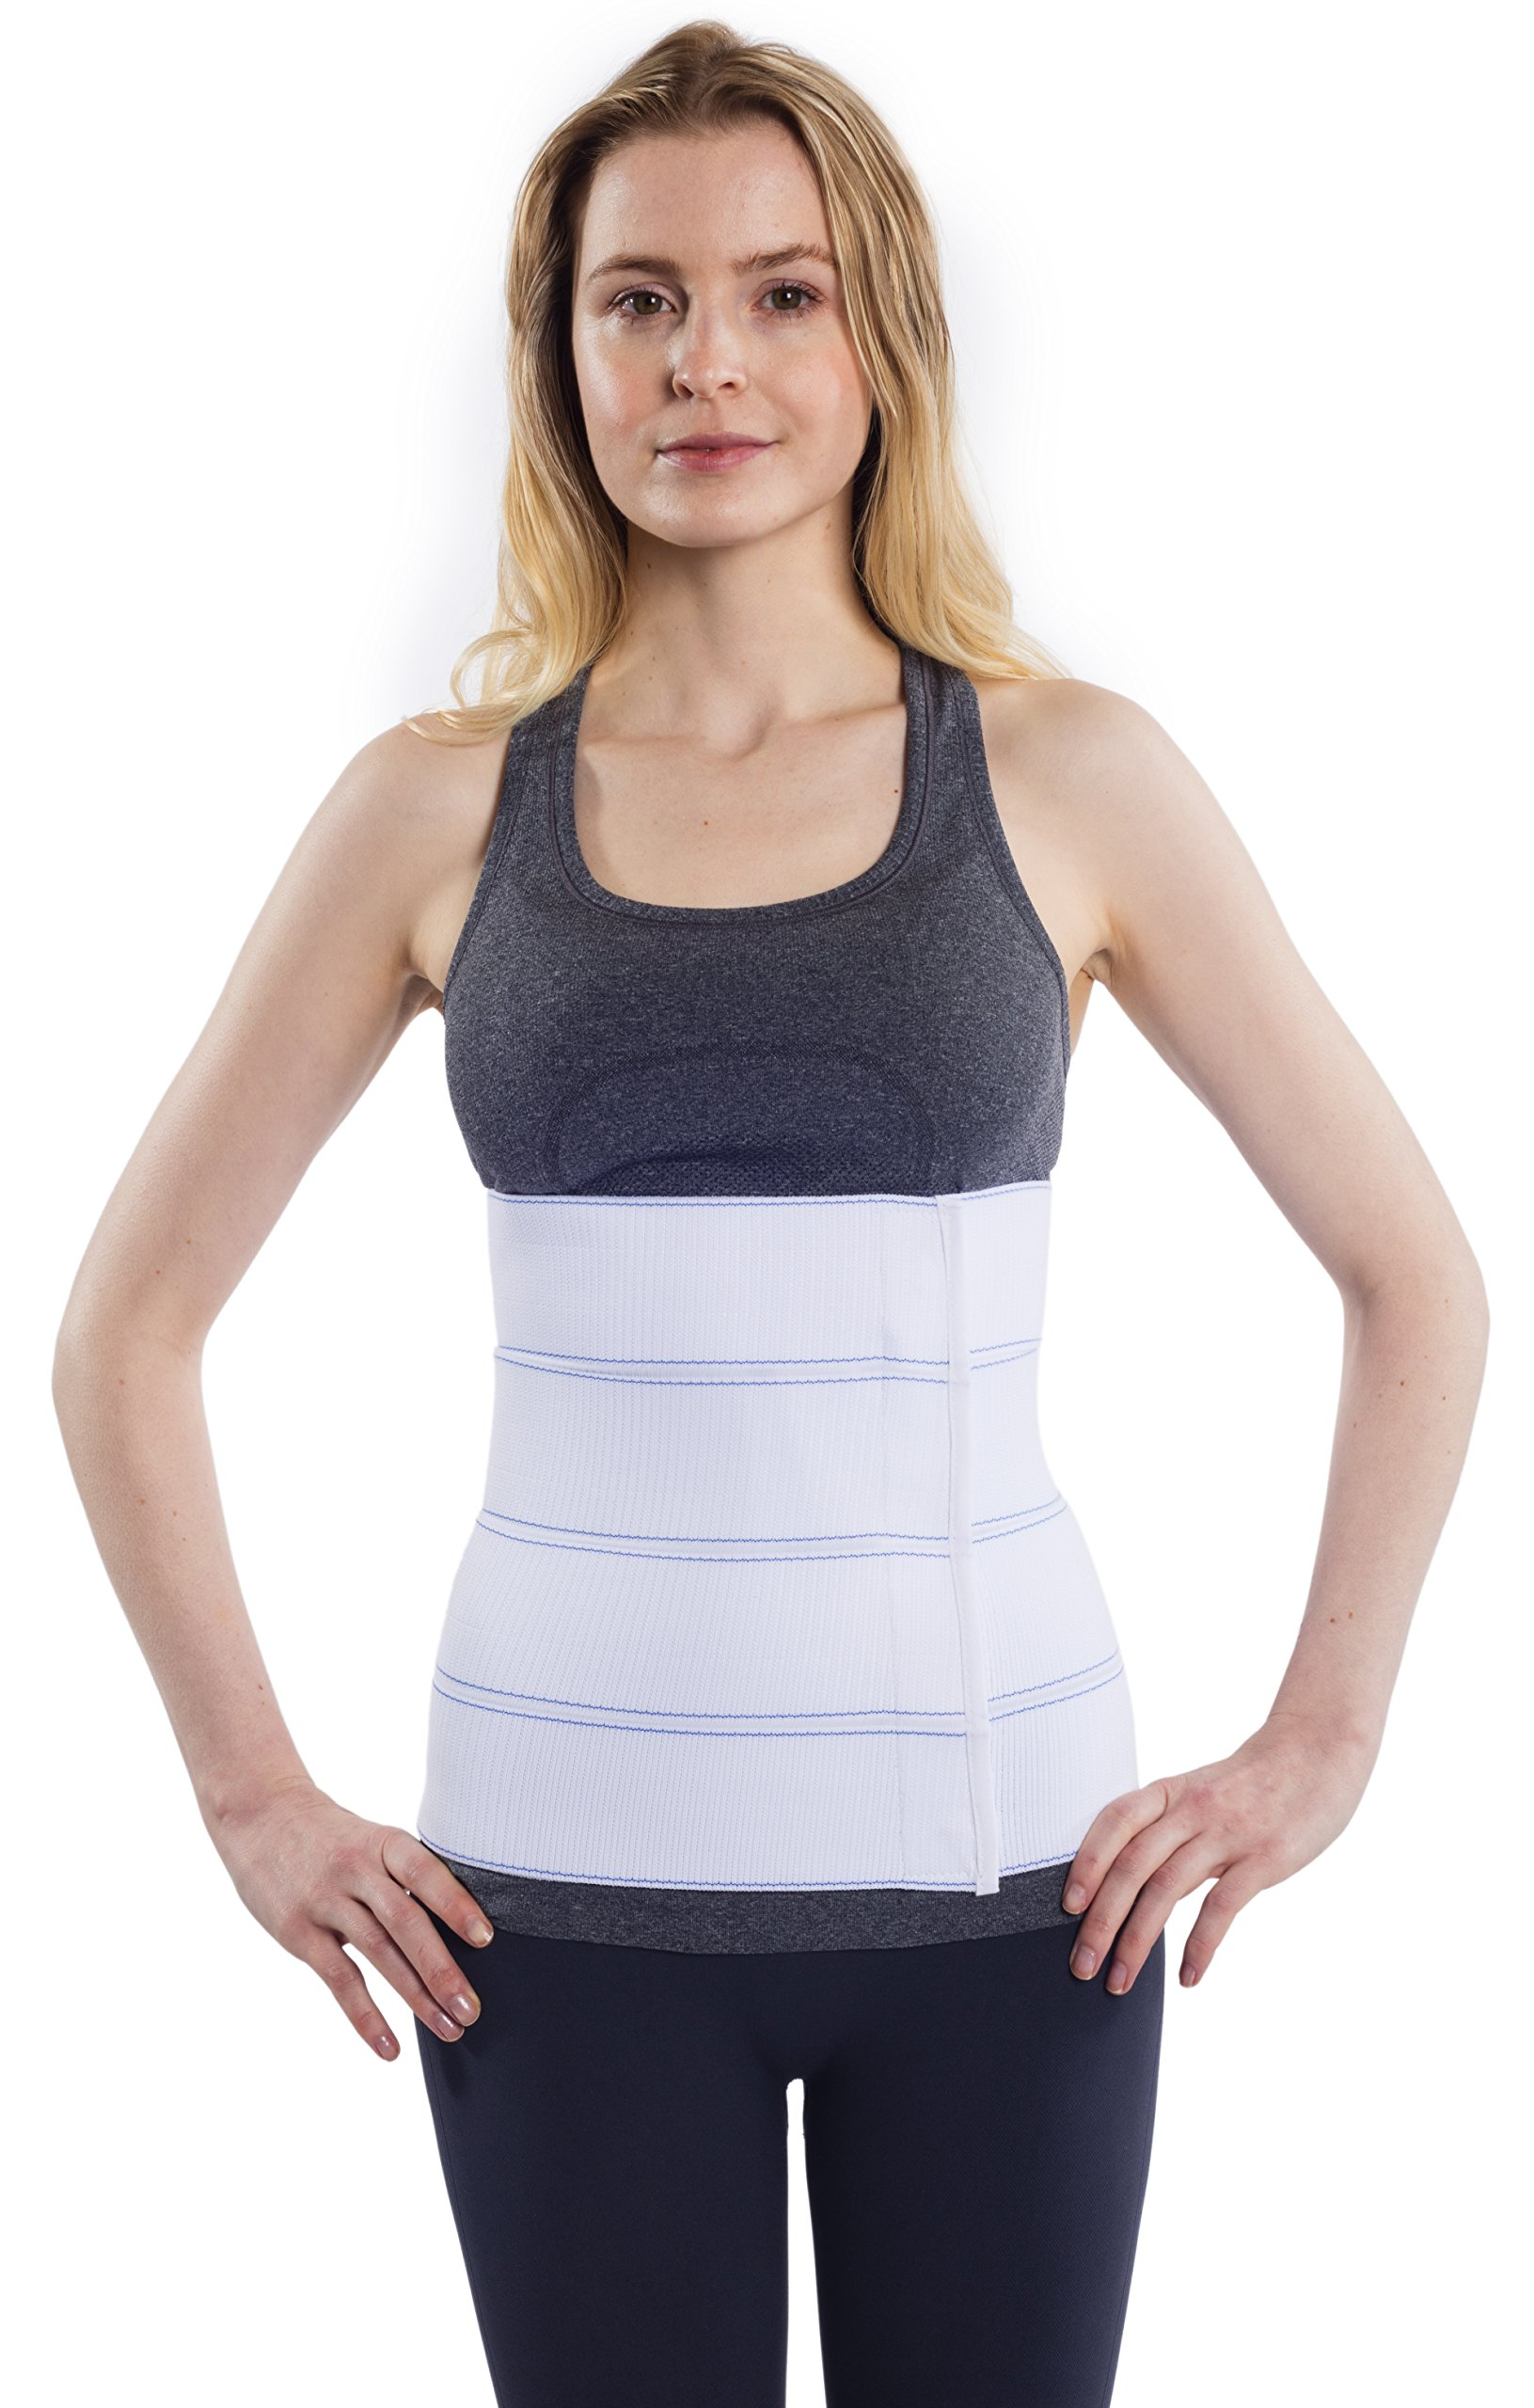 NYOrtho Abdominal Binder Lower Waist Support Belt - Compression Wrap for Men and Women (30'' - 45'') 4 Panel - 12''